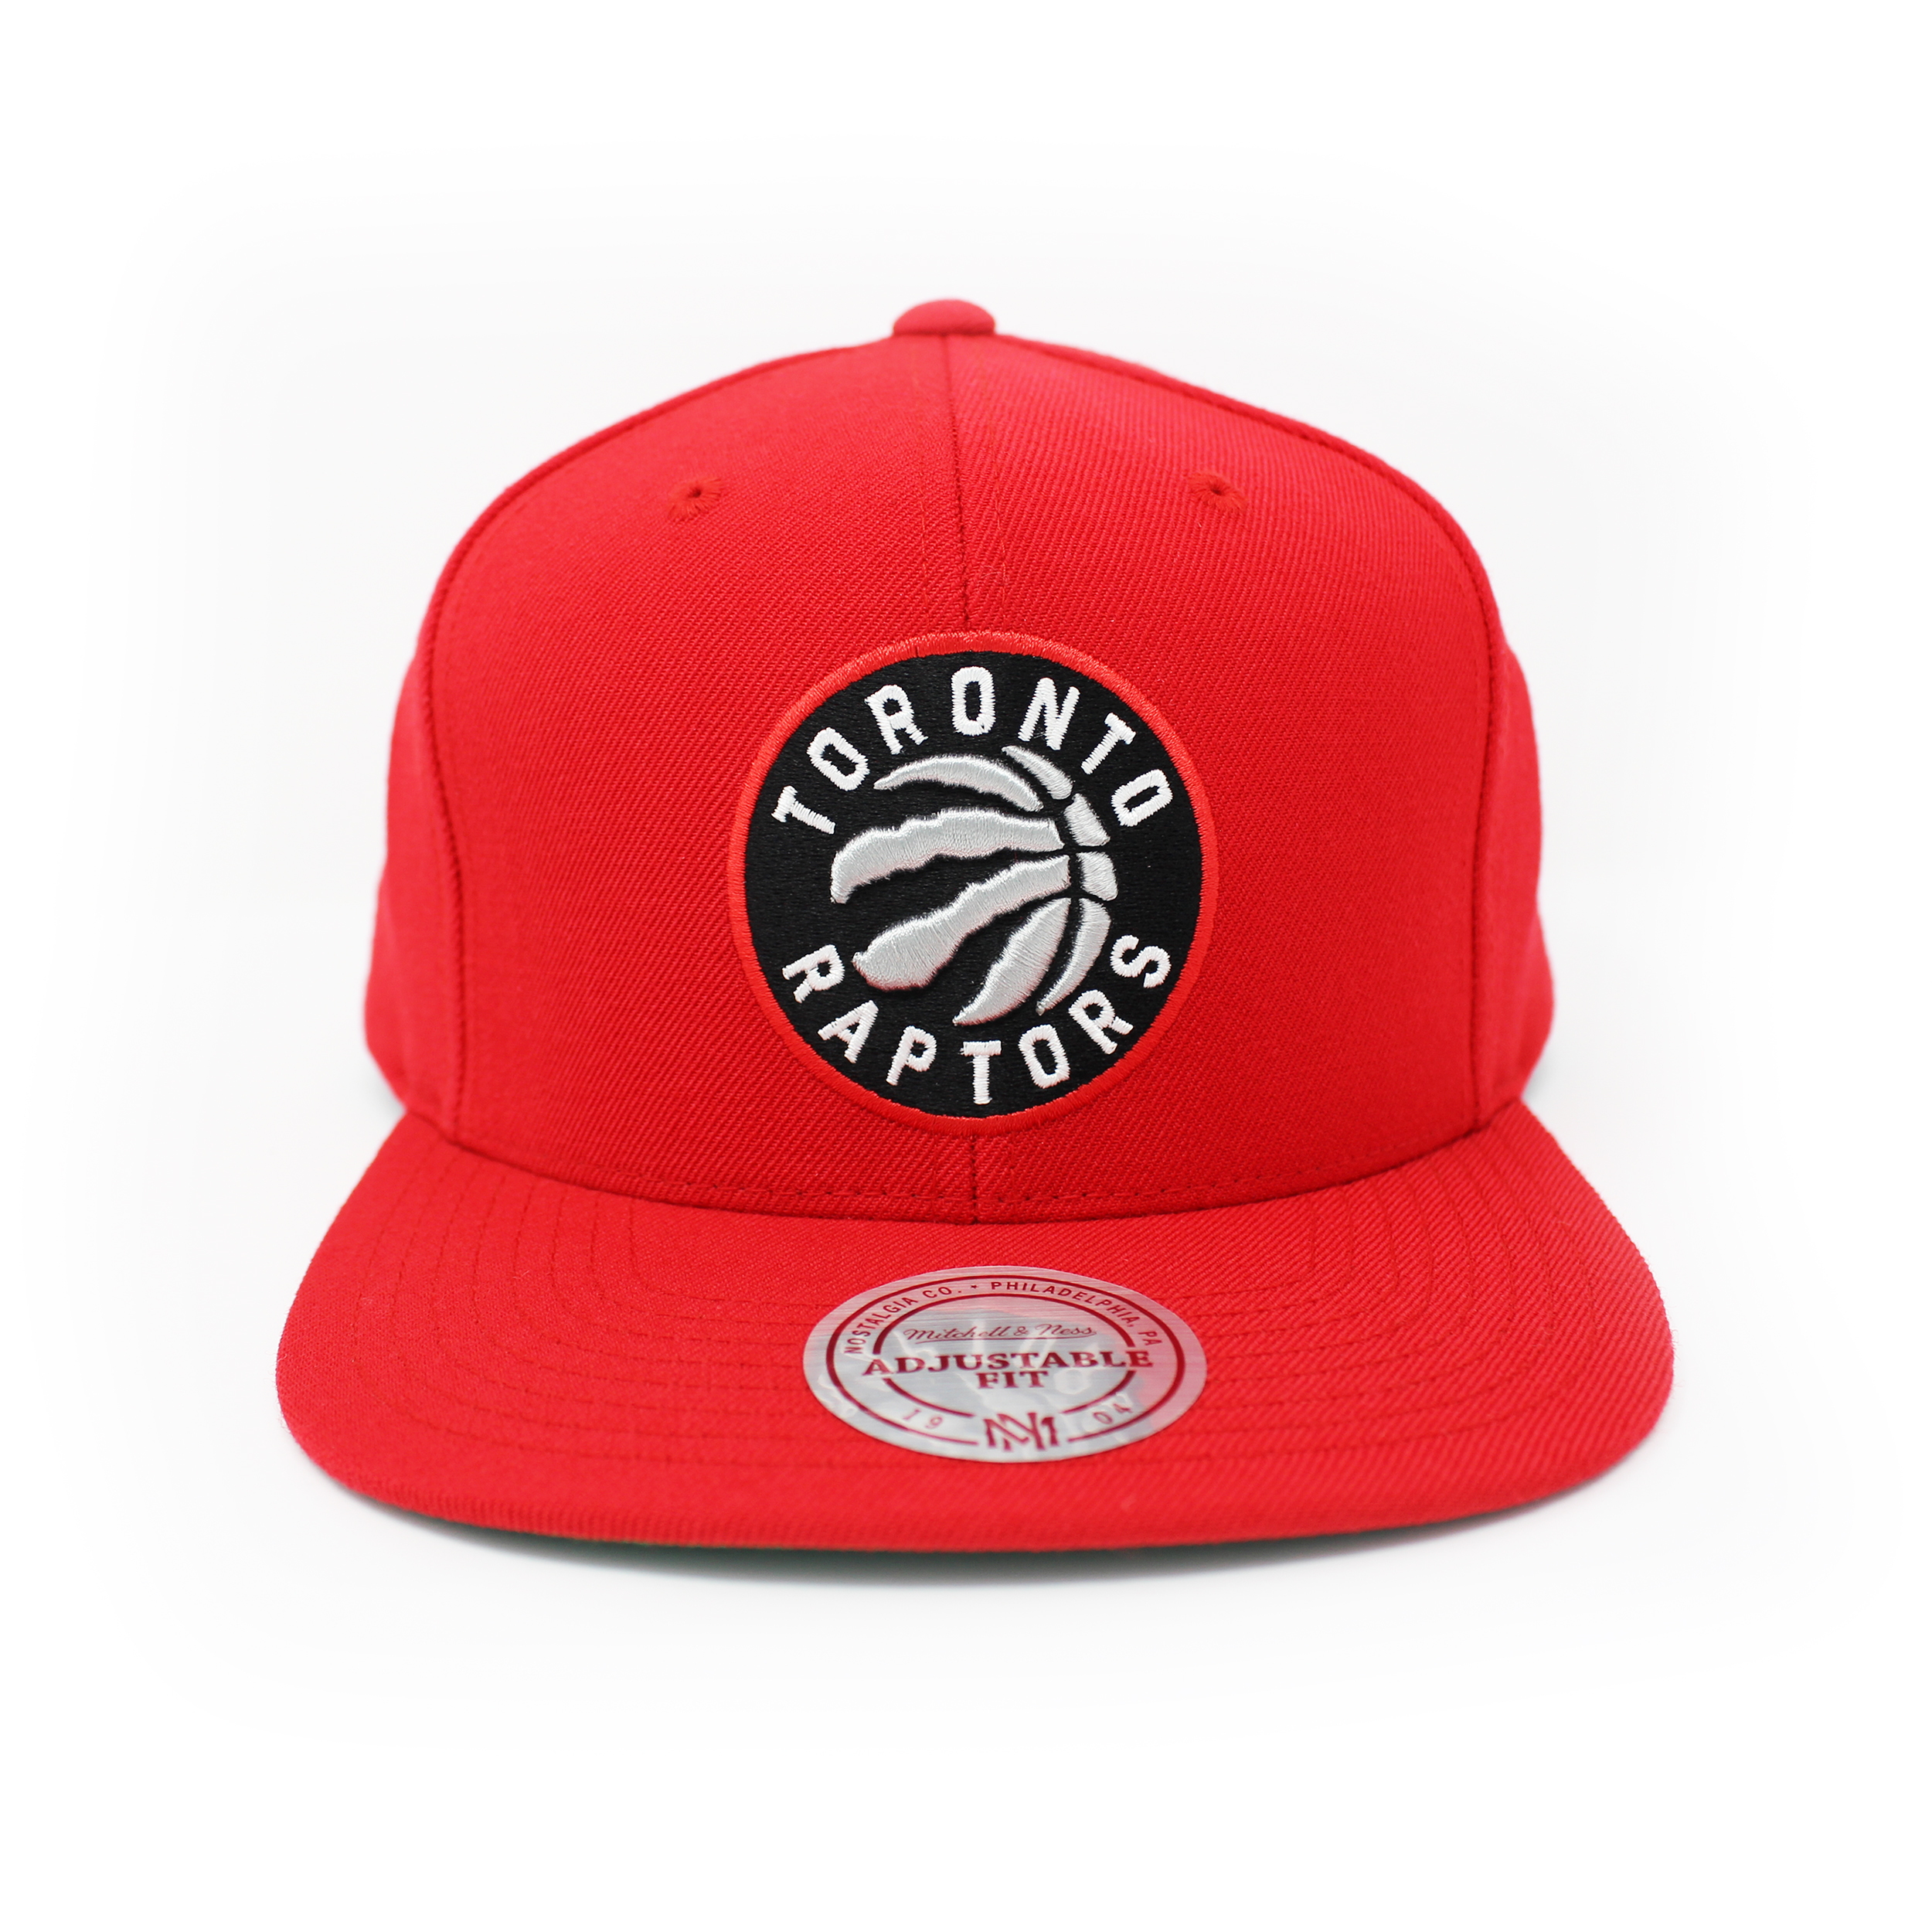 Mitchell and Ness Toronto Raptors Wool Solid Red Snapback Hat